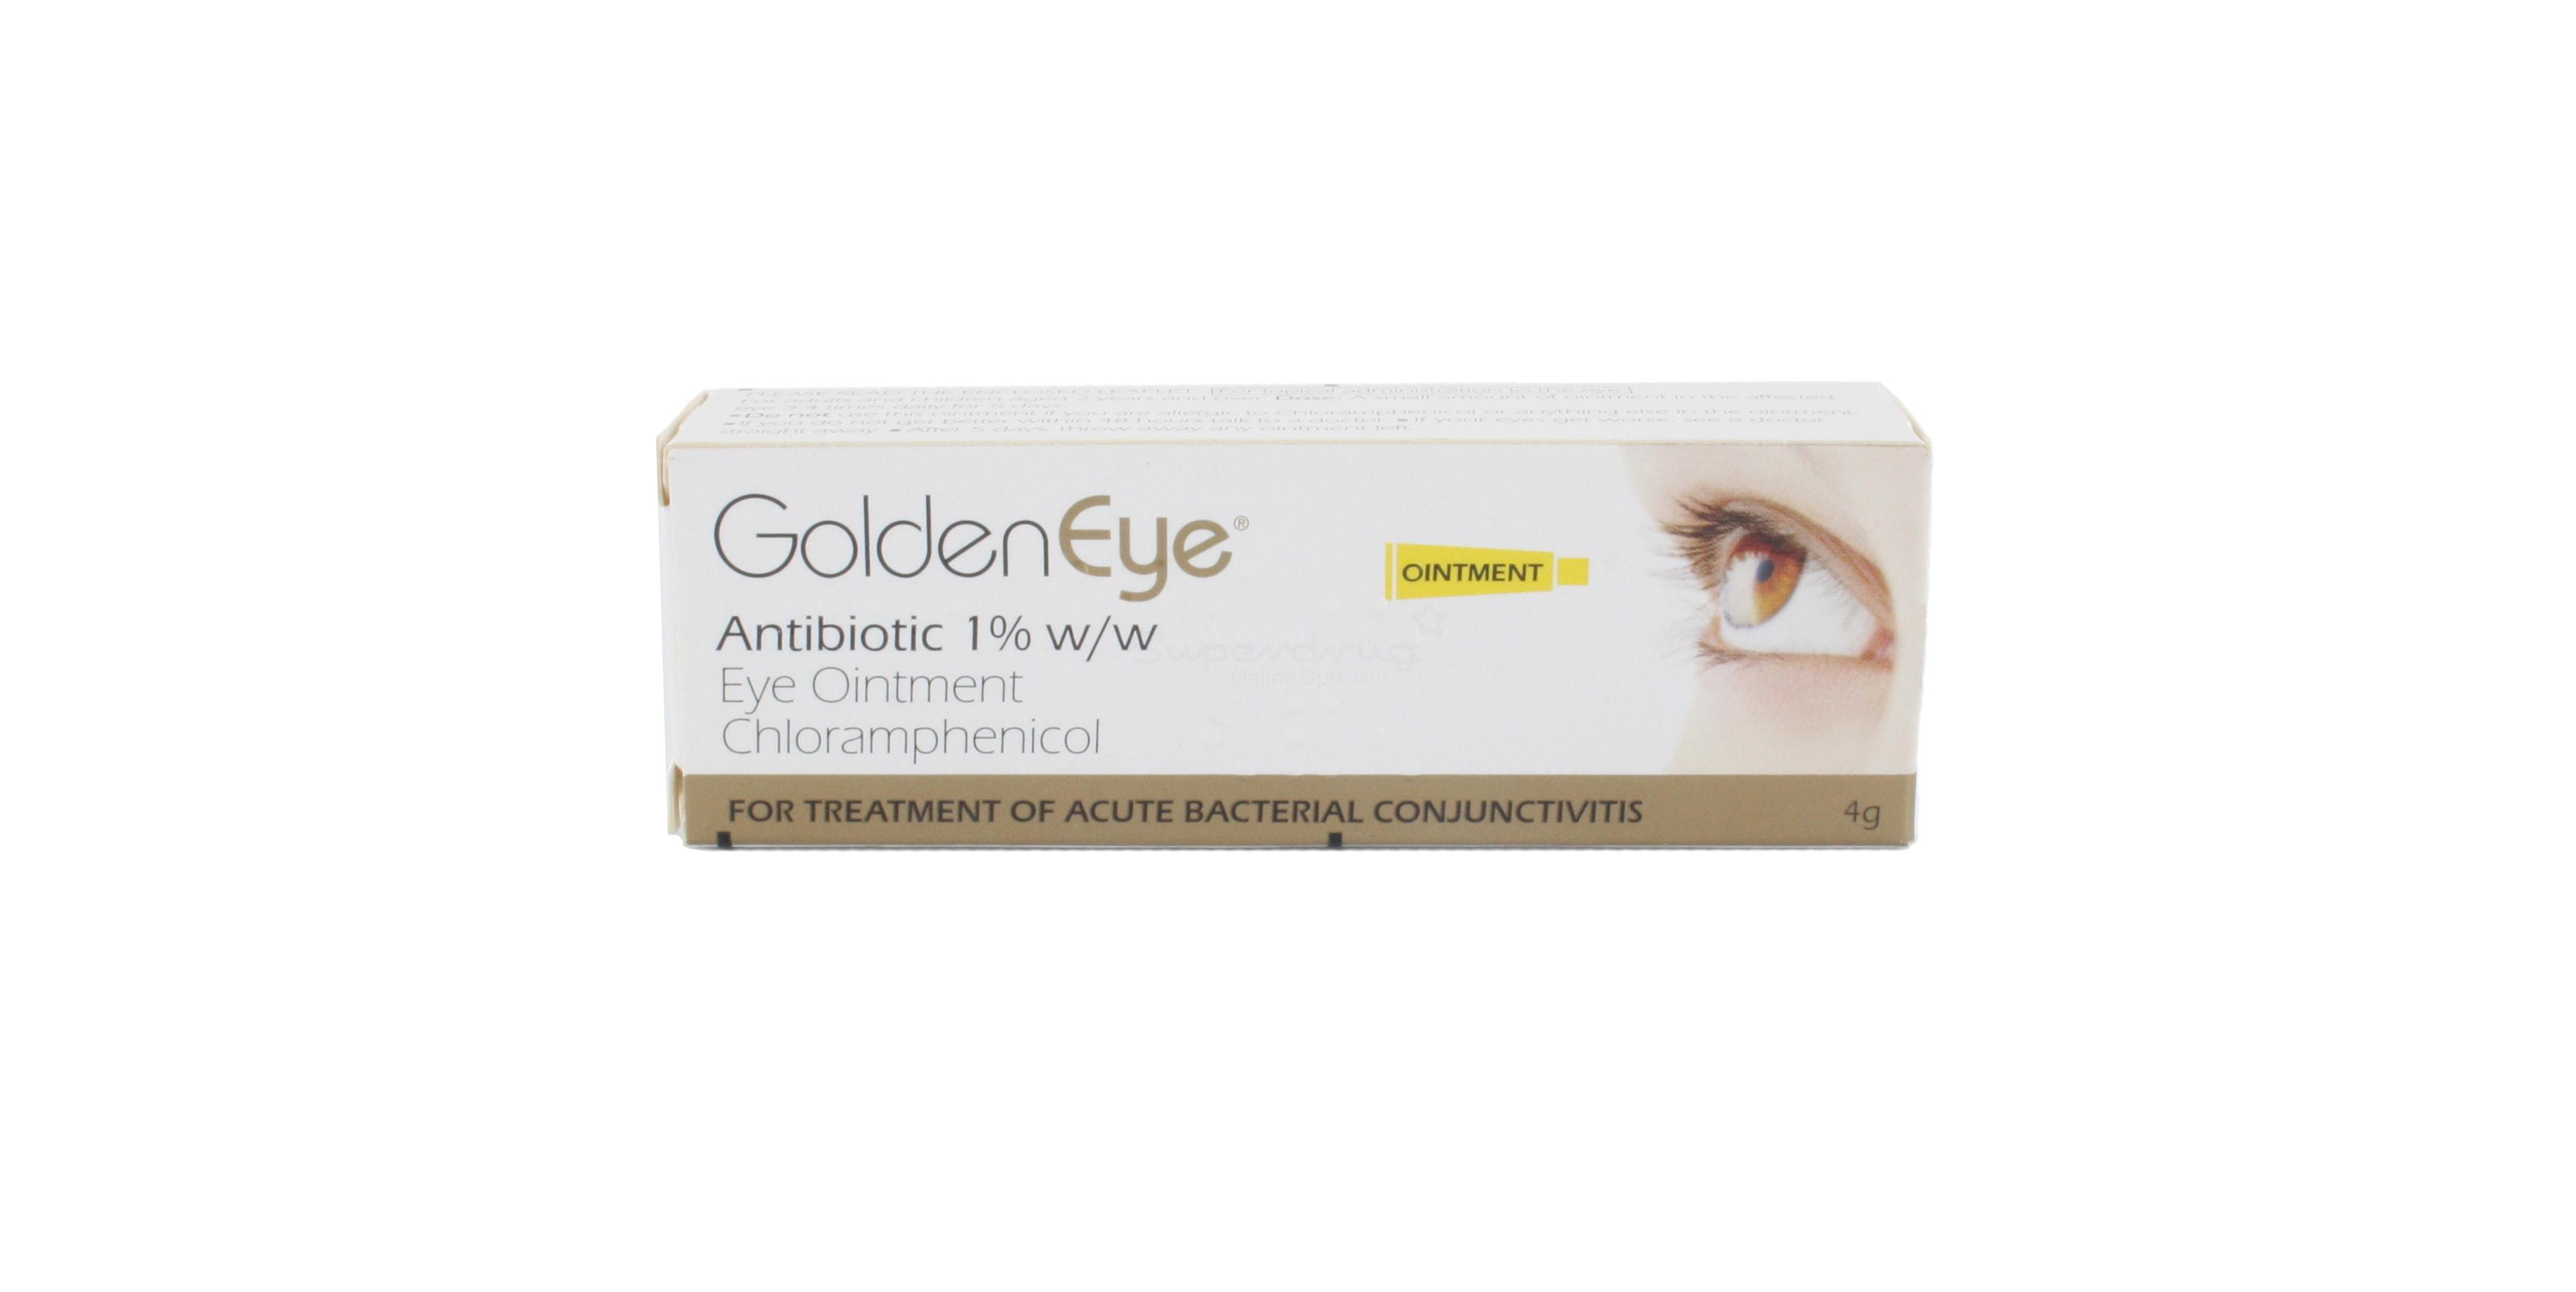 Eye Ointment Chloramphenicol Golden Eye Antibiotic Eye Ointment Chloramphenicol Accessories, Optical accessories